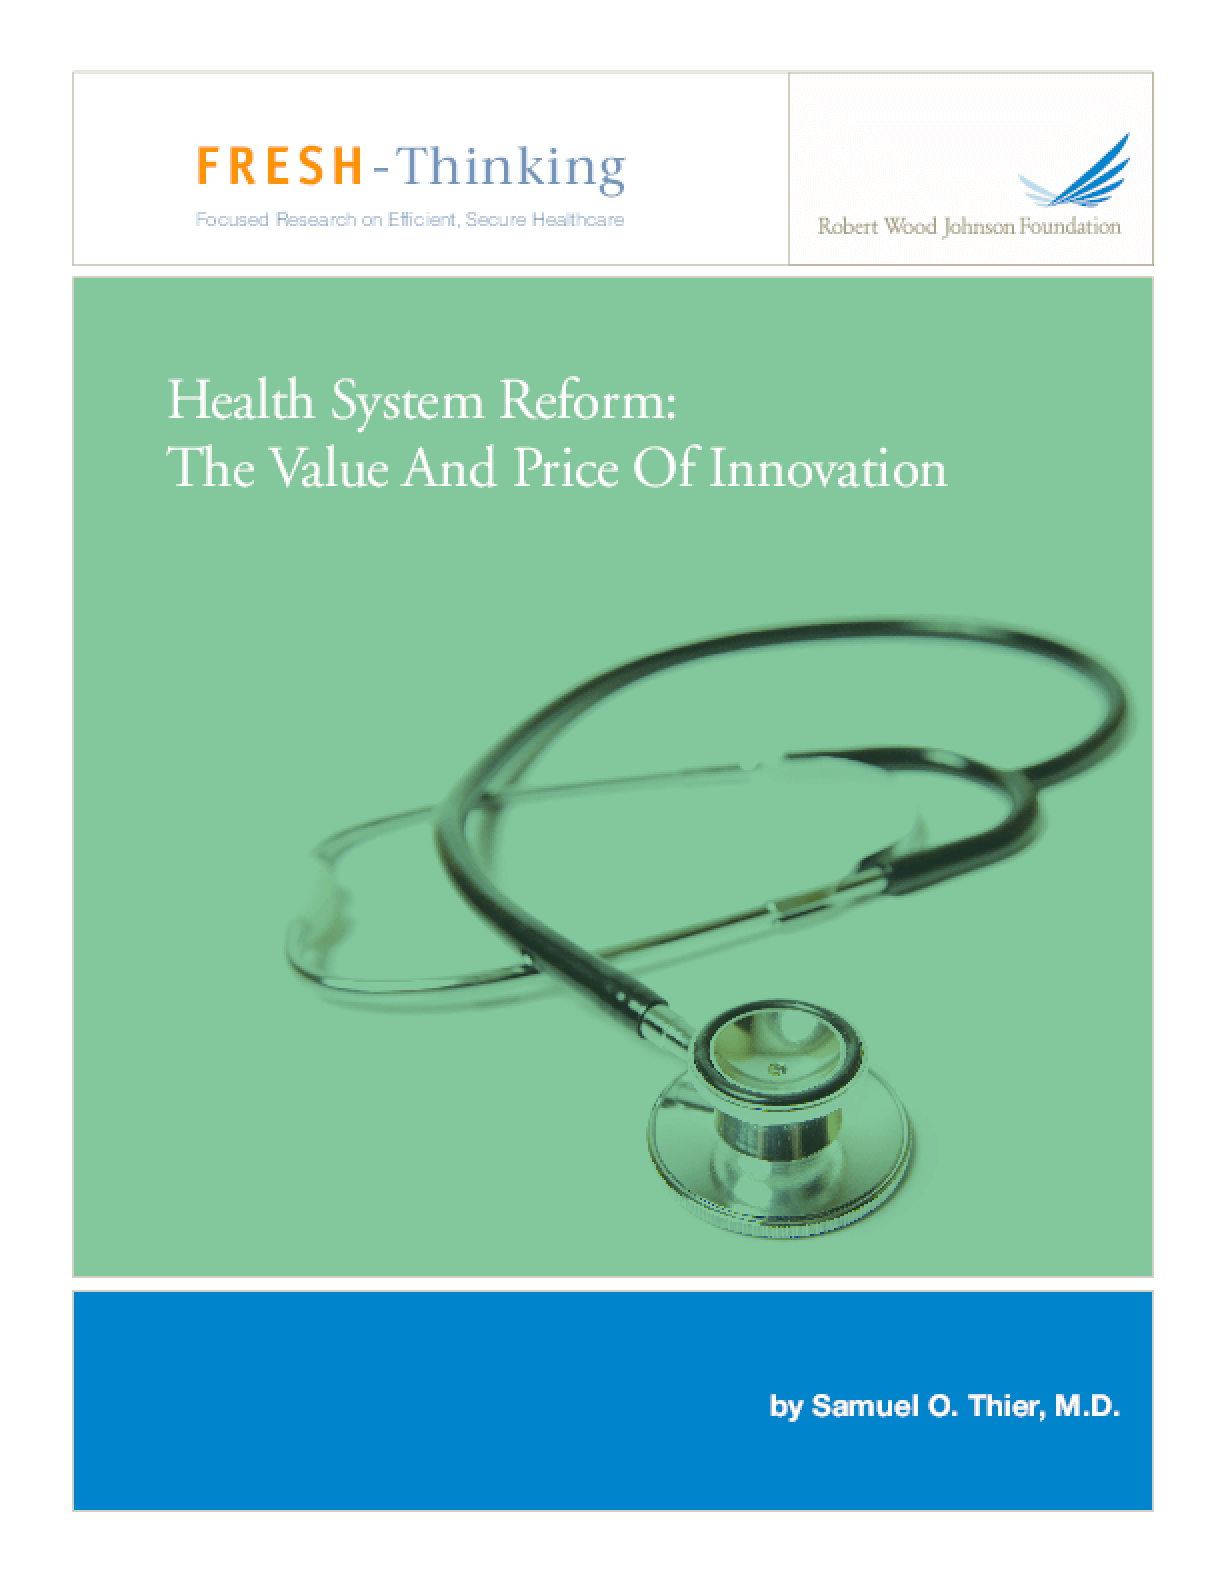 Health System Reform: The Value and Price of Innovation